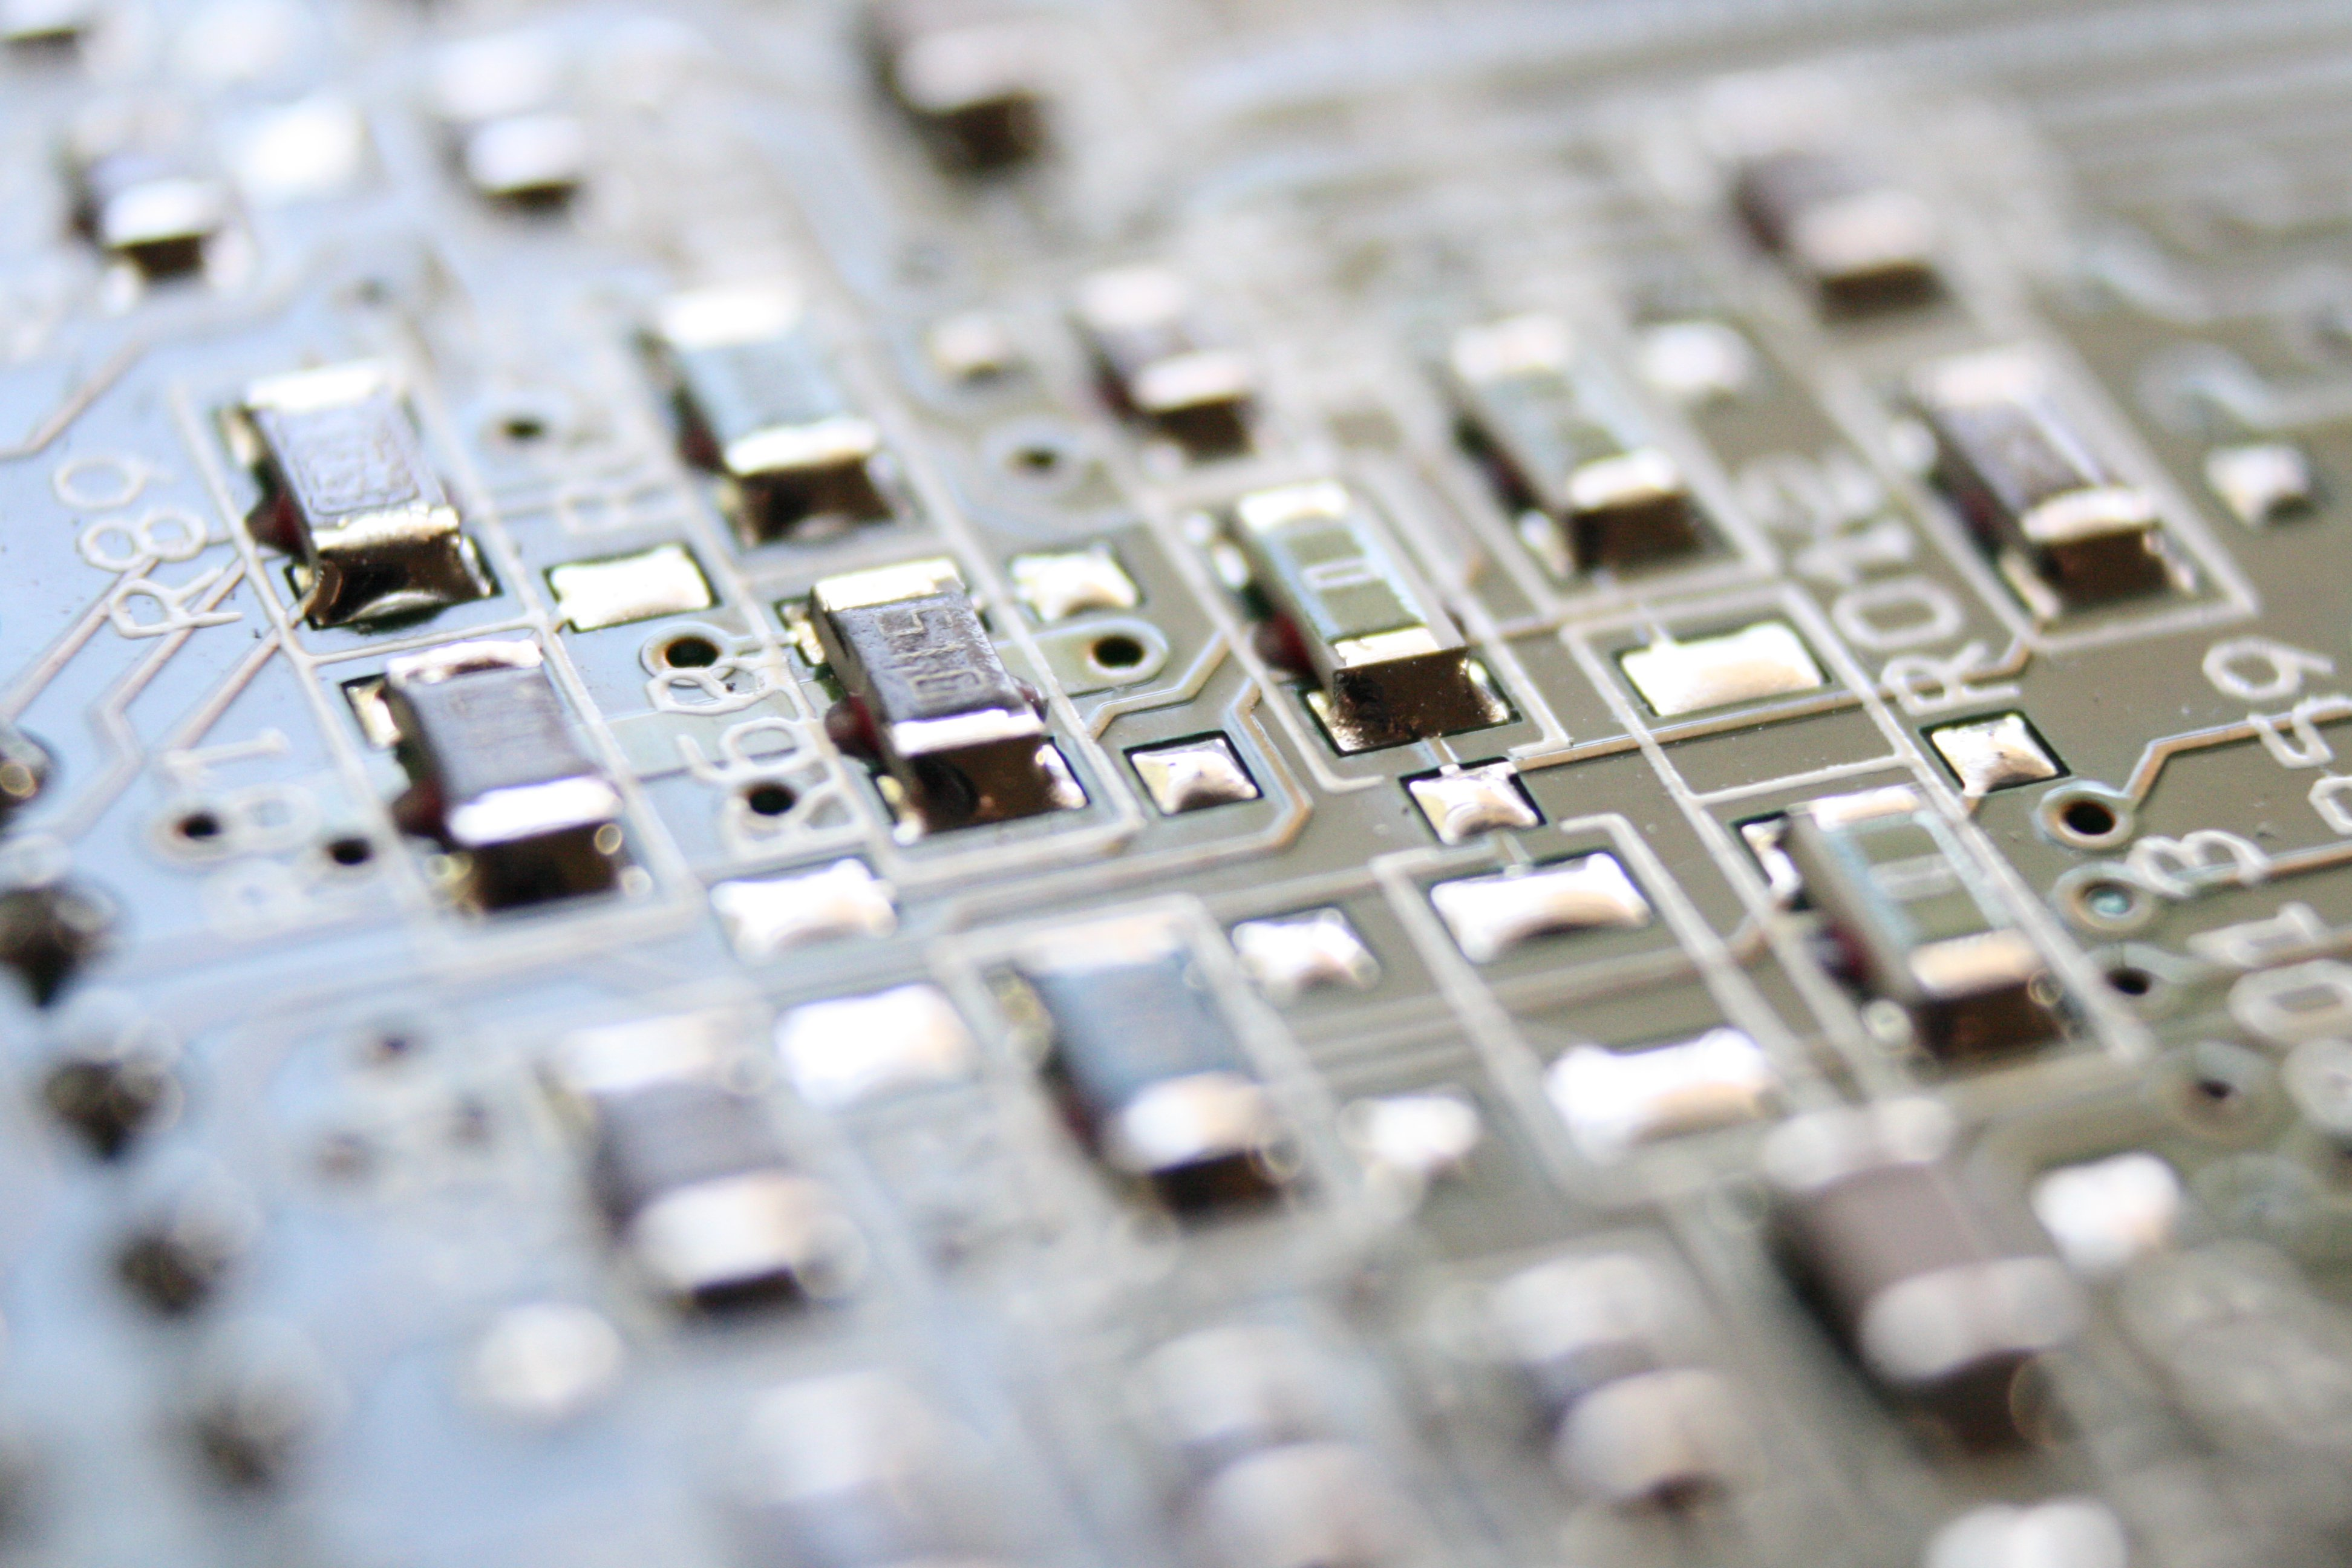 Integrated Circuit Board How To Install An Into Wikipedia Photos And Videos Macro Picture Free Photograph